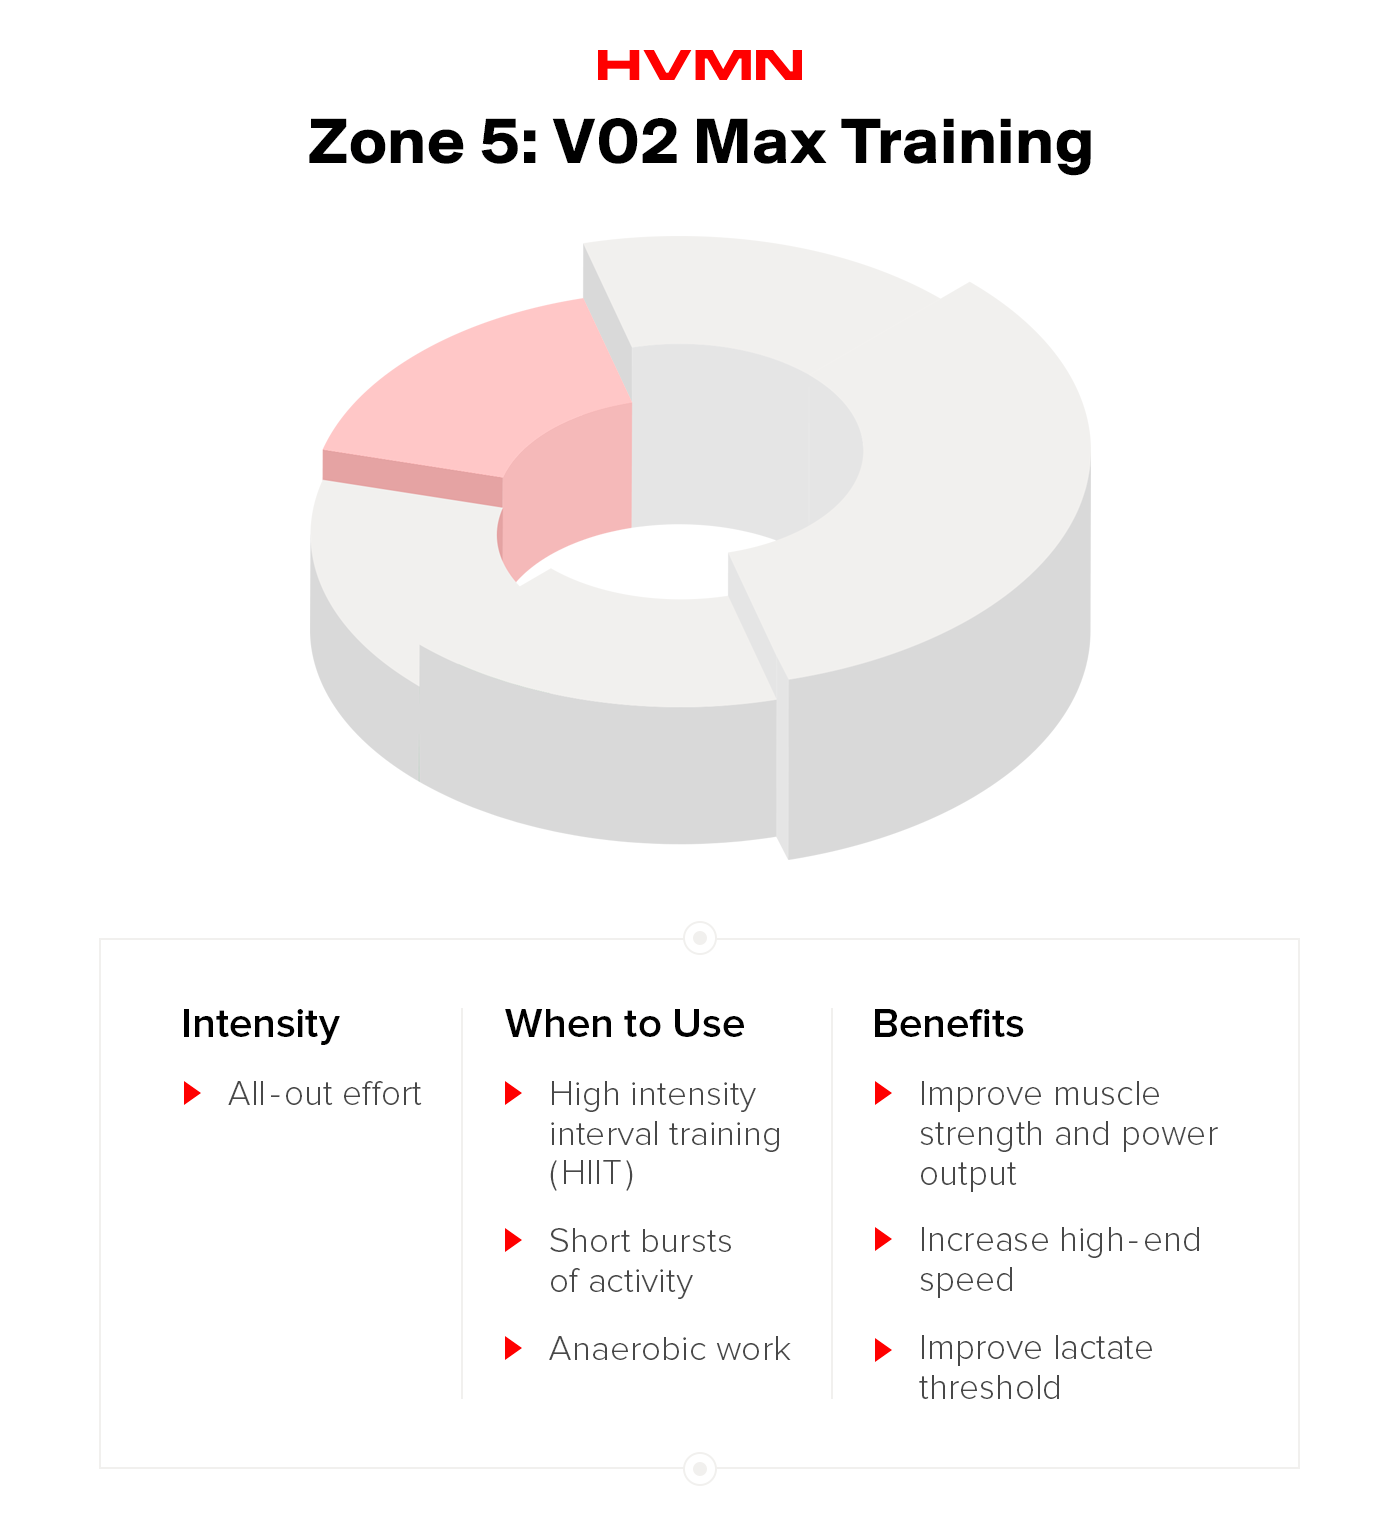 Zone 5: V02 max training